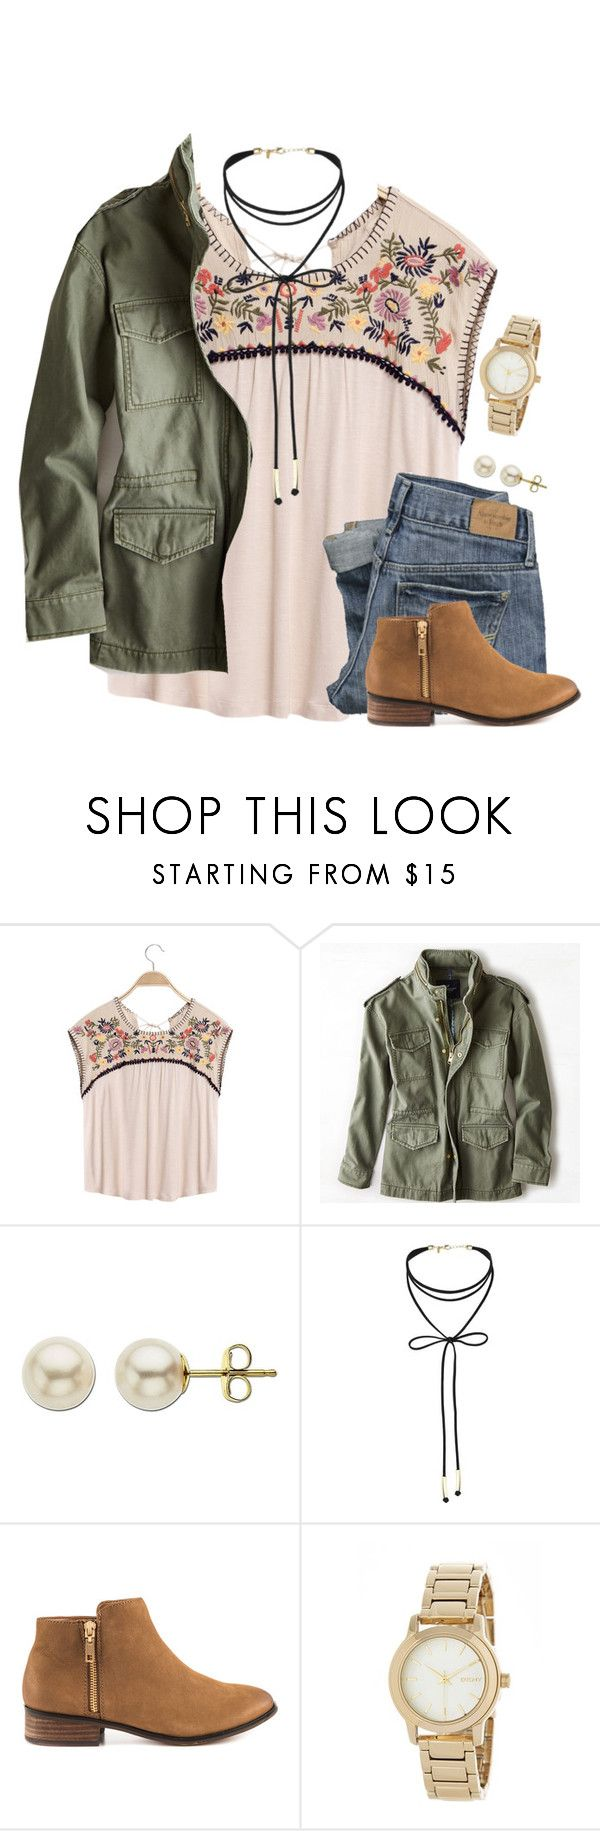 """""""Lord, let them see you in me."""" by amberfmillard-1 ❤ liked on Polyvore featuring Abercrombie & Fitch, American Eagle Outfitters, Lord & Taylor, Miss Selfridge, ALDO and DKNY"""